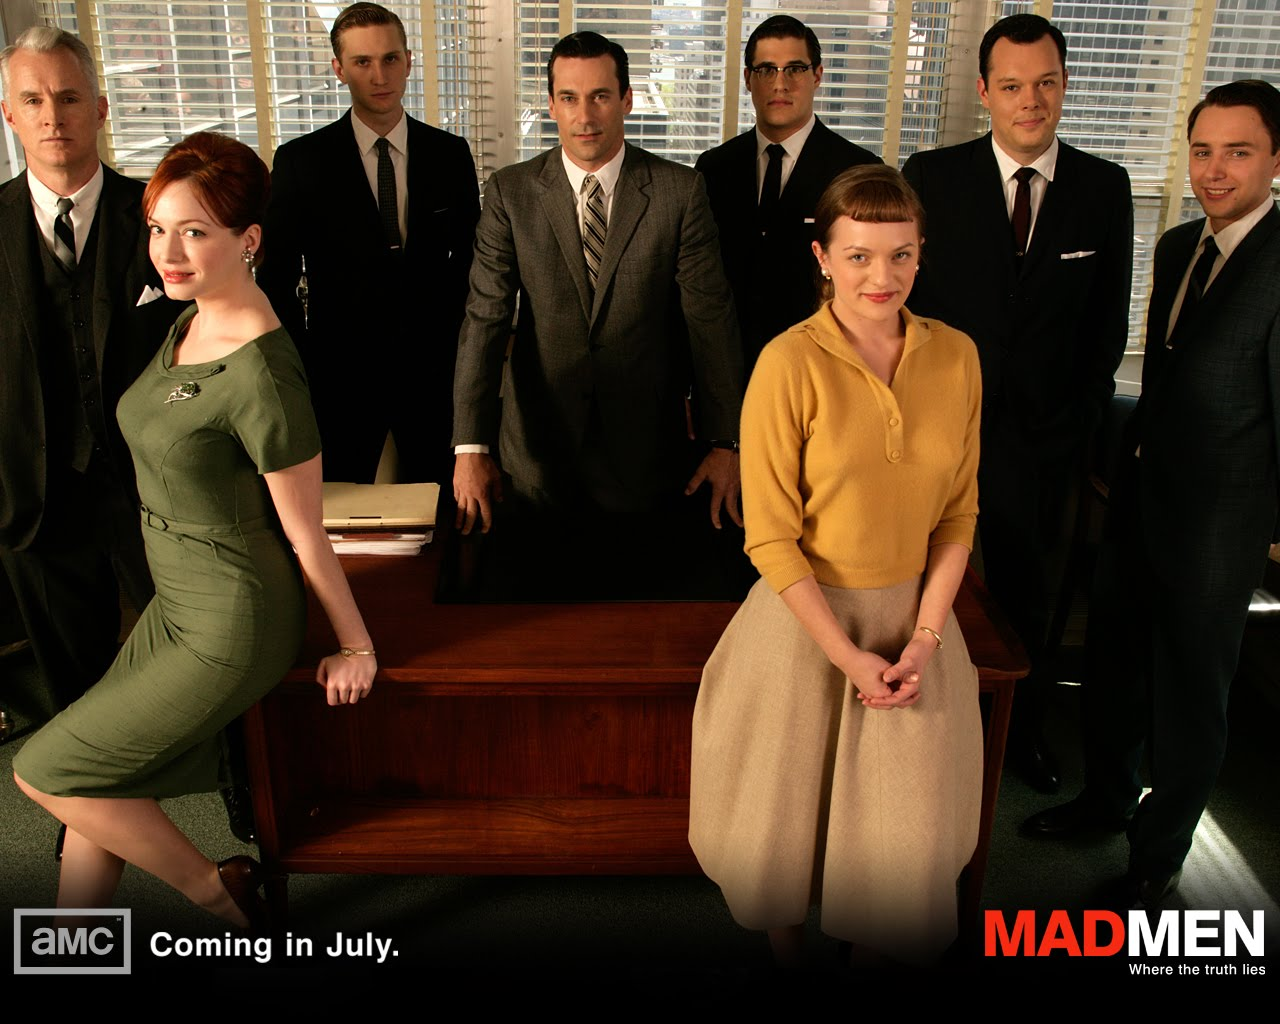 http://4.bp.blogspot.com/_e915SPZdjcI/TFkAVwVZndI/AAAAAAAAAD4/ieSkP6w656c/s1600/Christina_Hendricks_in_Mad_Men_TV_Series.jpg